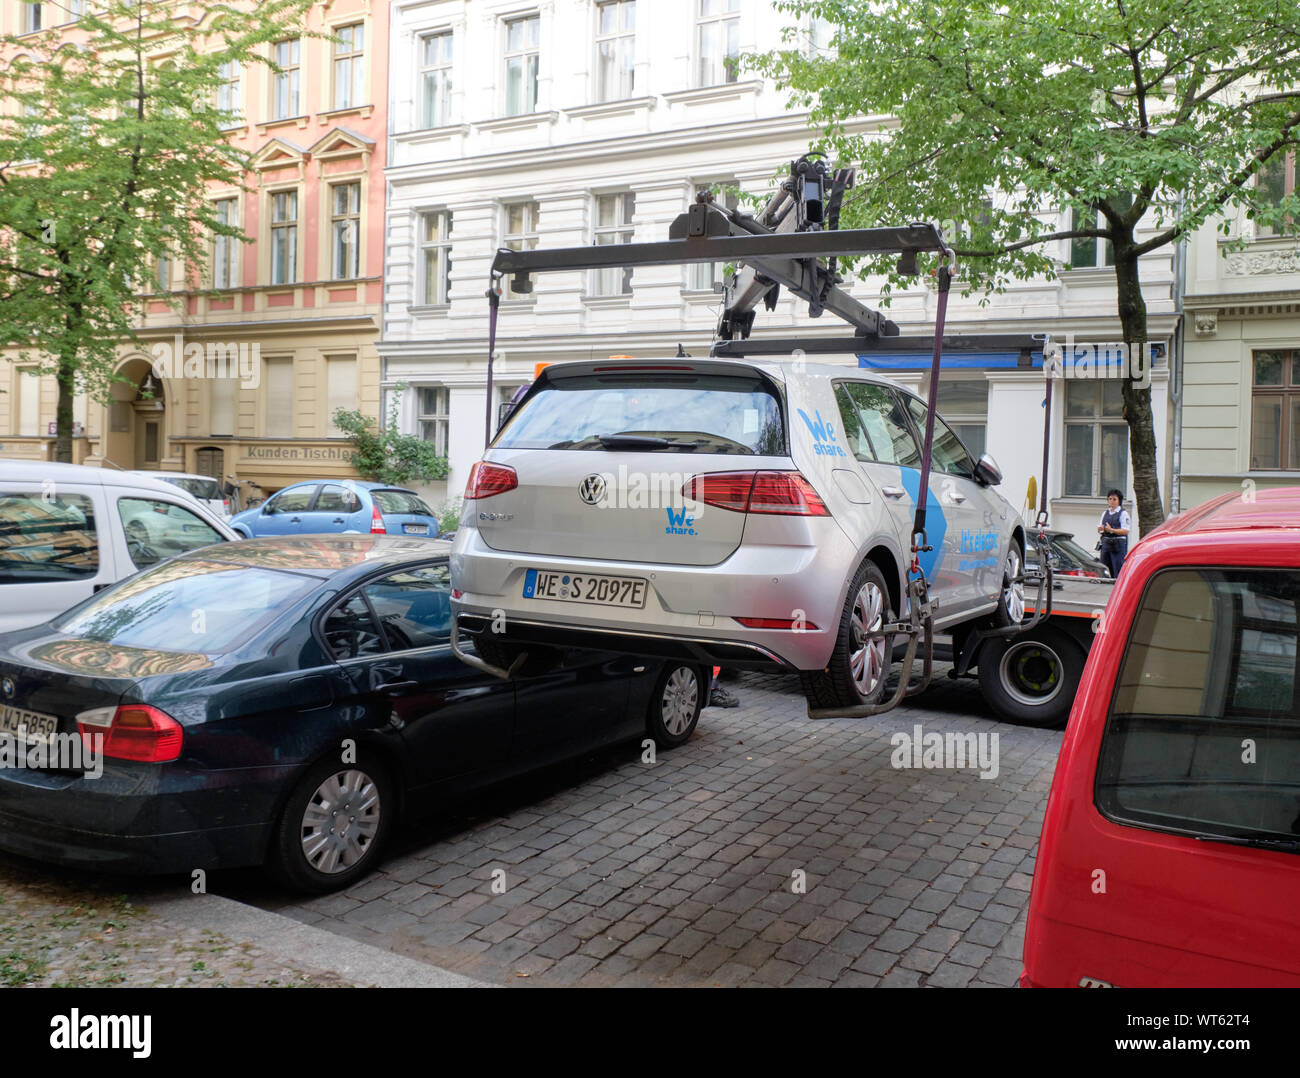 electric-car-sharing-vehicle-being-lowered-in-parking-spot-by-towing-crane-by-employee-berlin-germany-WT62T4.jpg